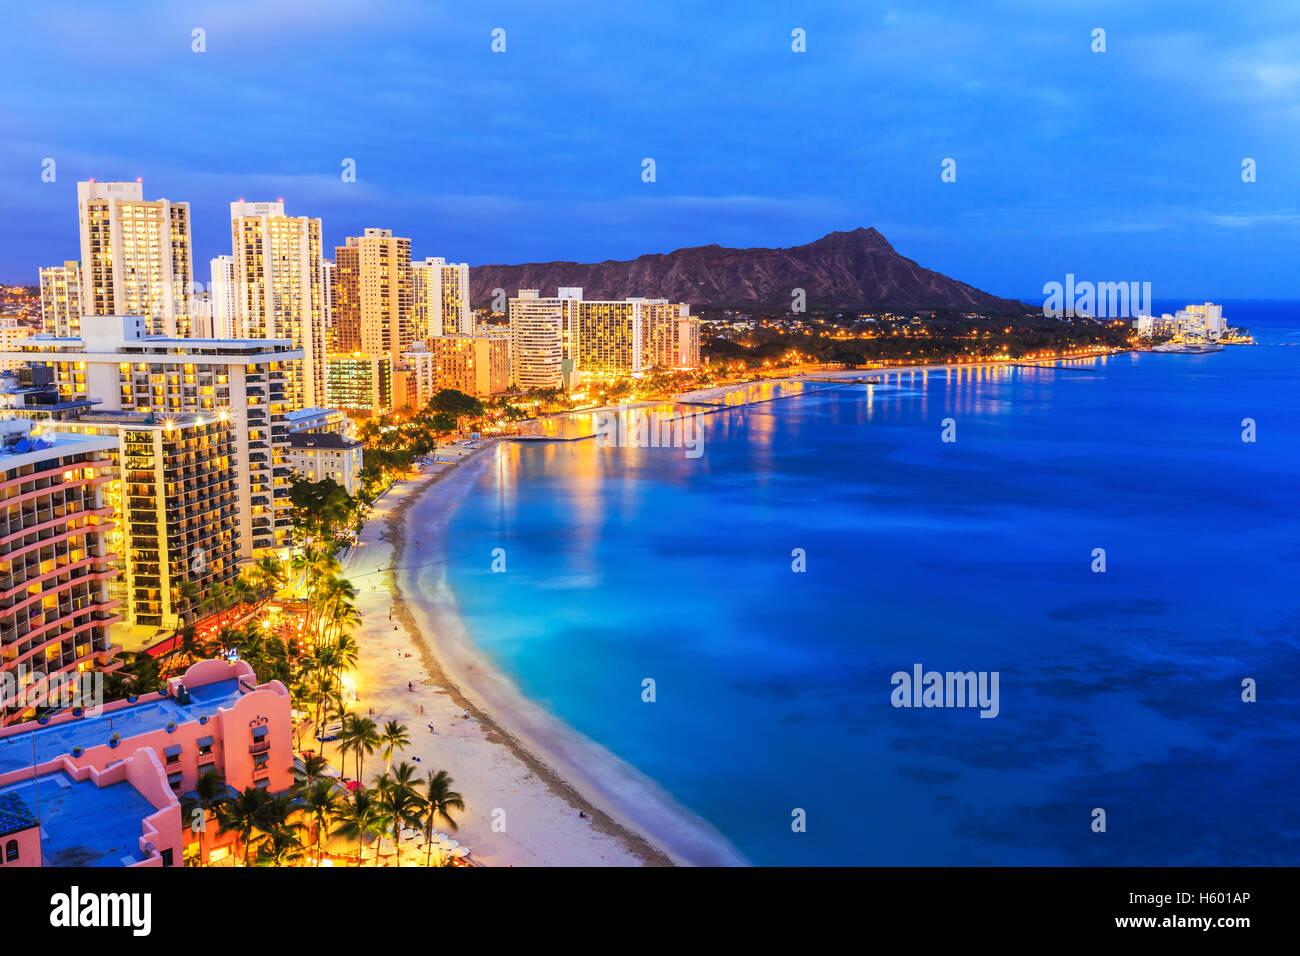 Honolulu, Hawaii. Sur les toits de Waikiki beach. Photo Stock